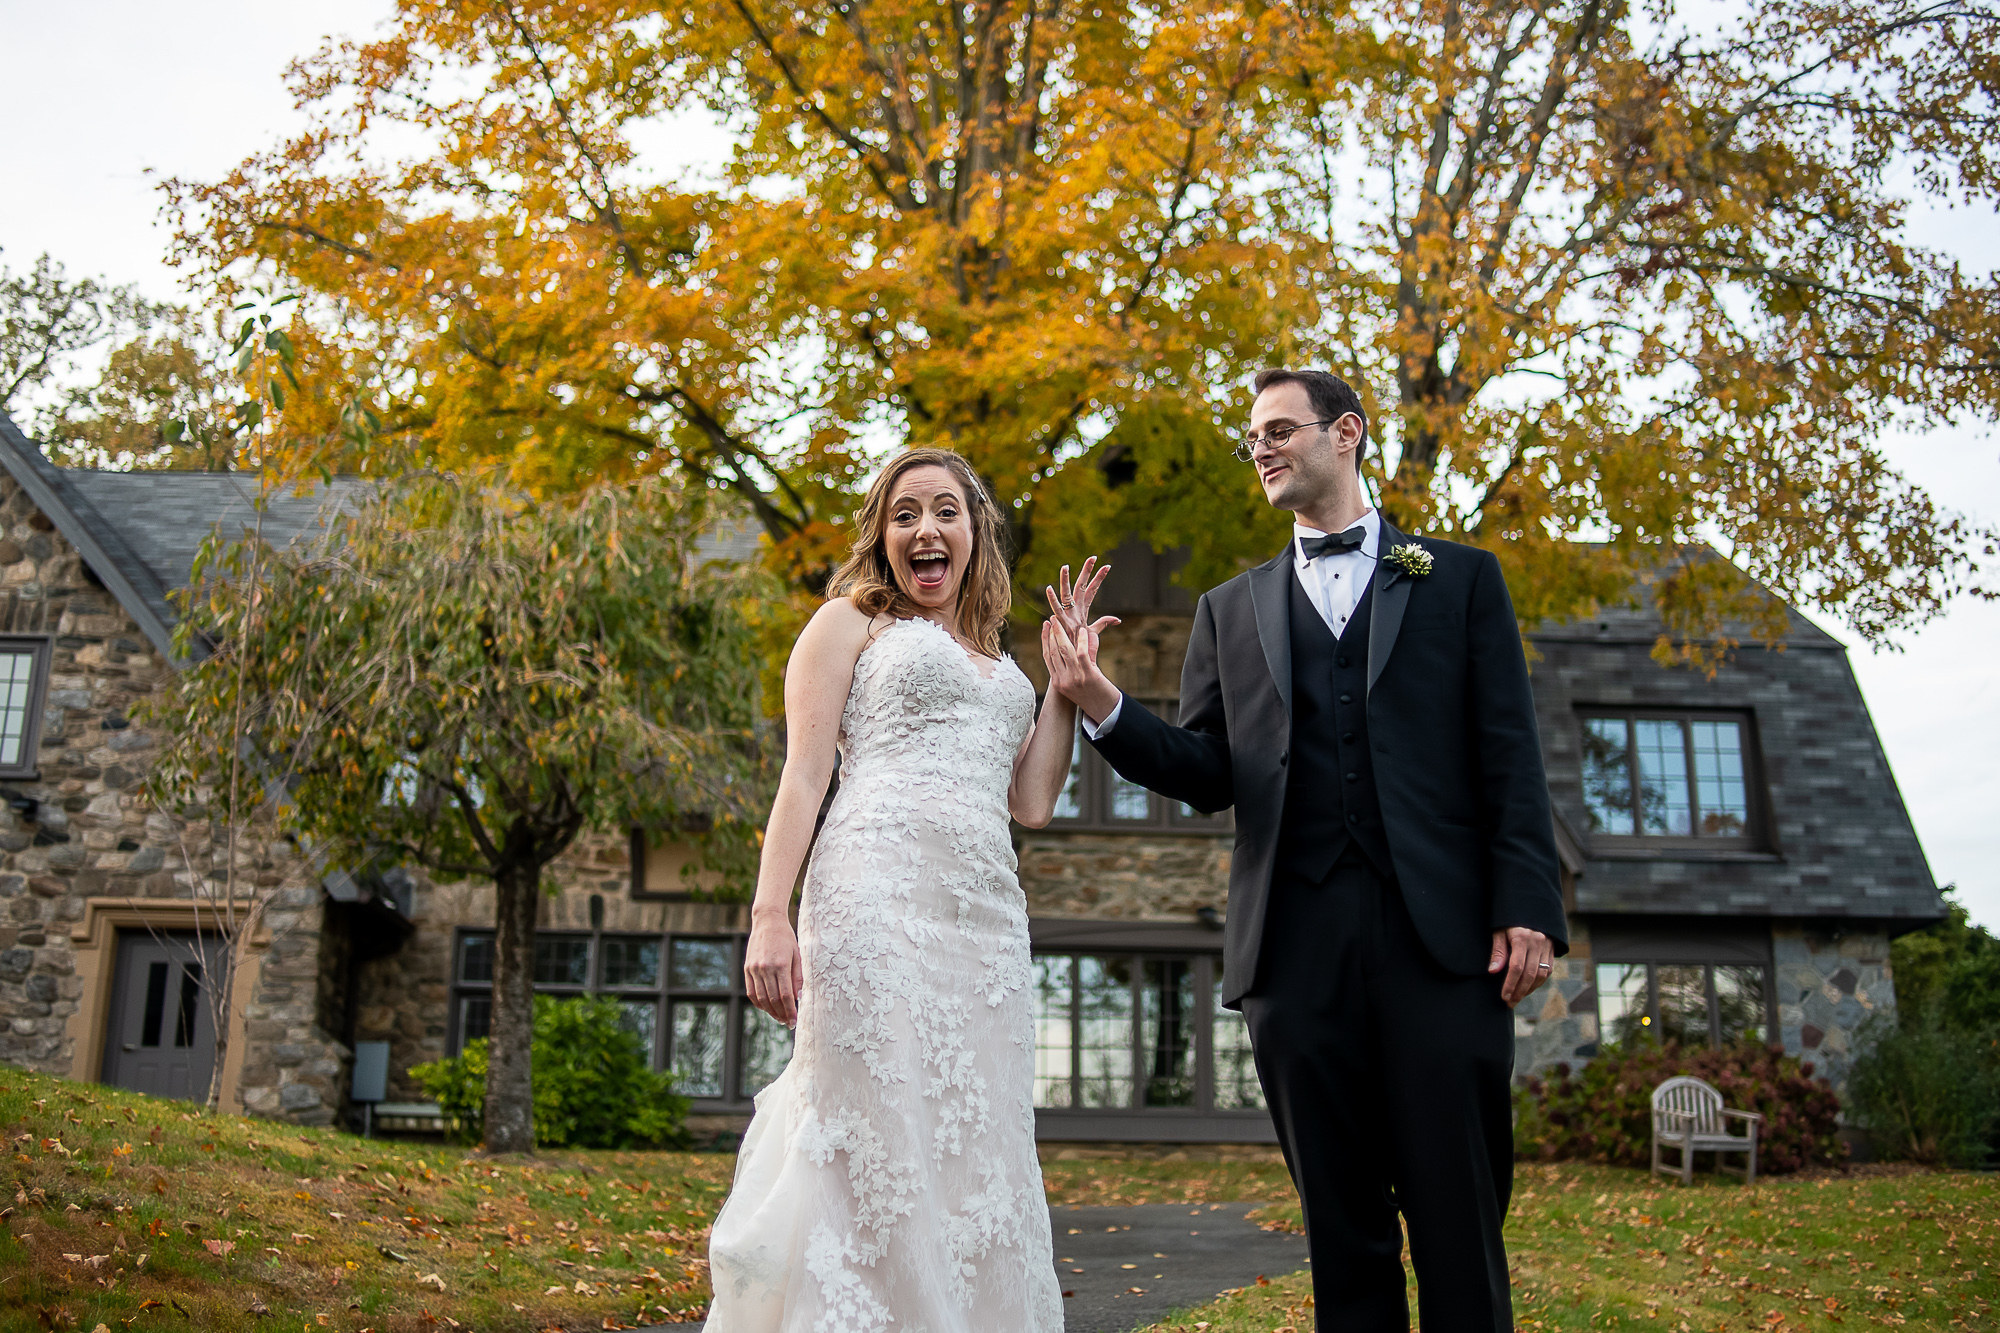 Erica & Michael's micro-wedding at Bet Am Shalom; photos by Christopher Duggan